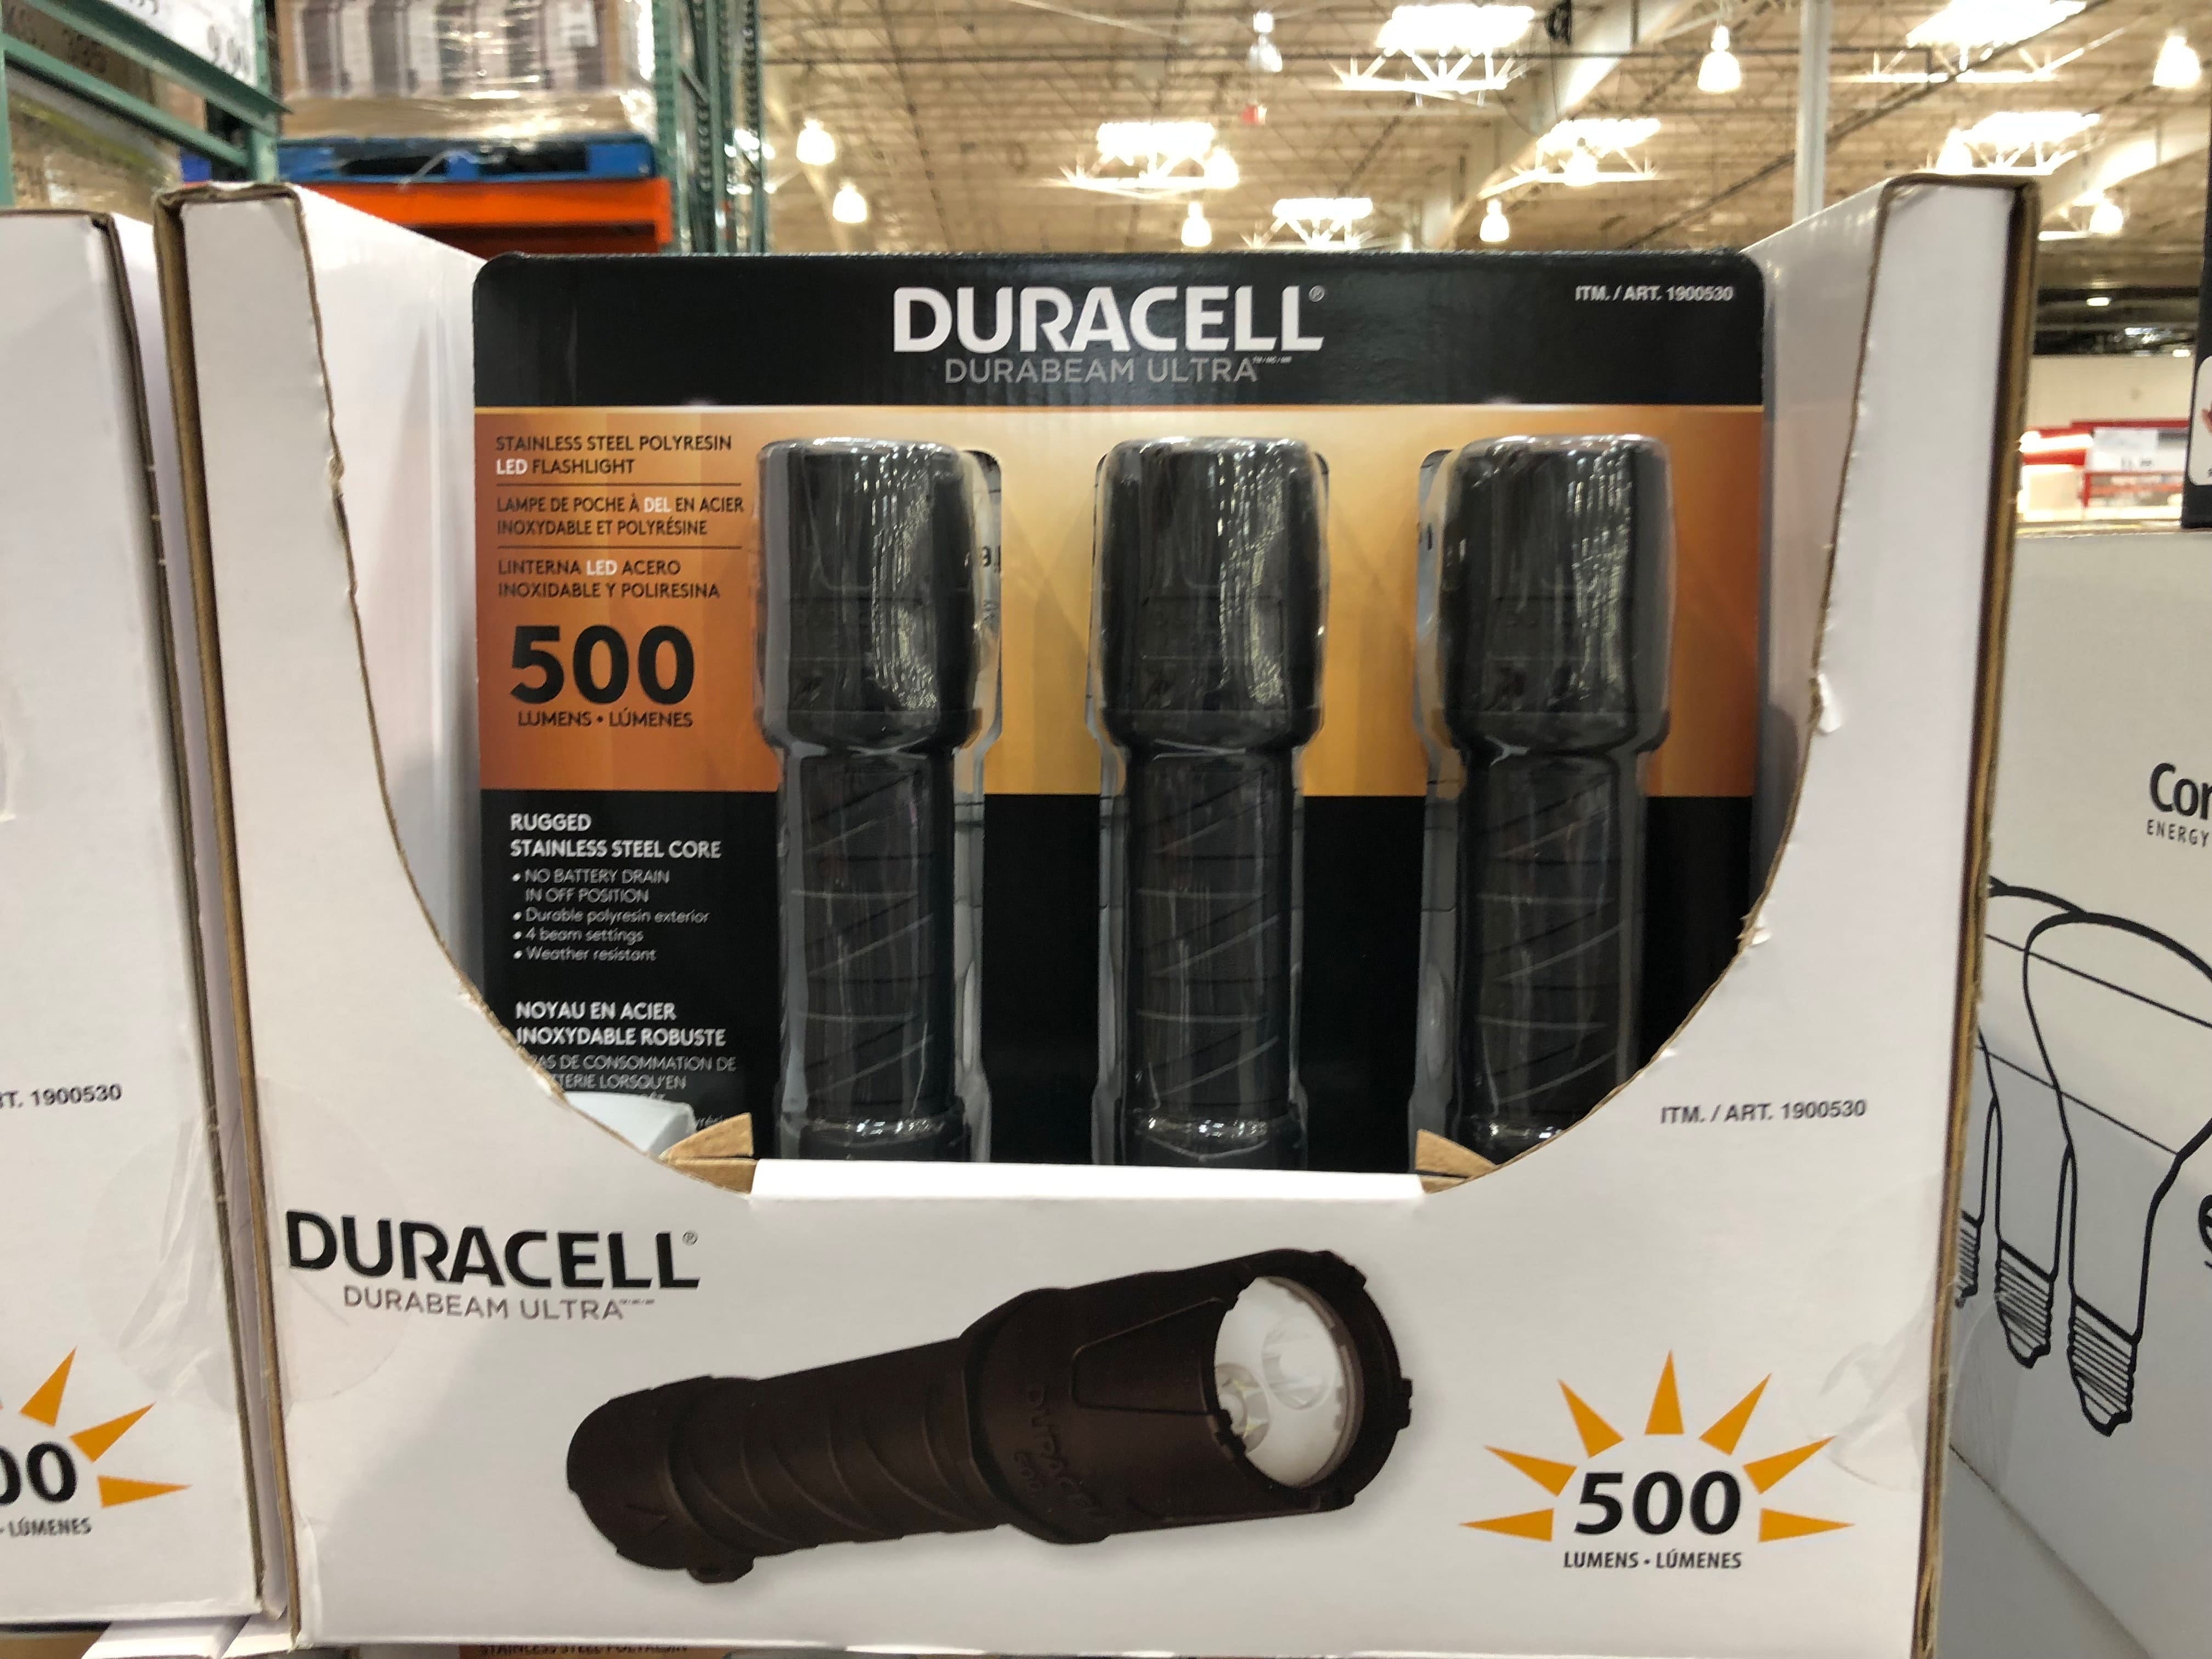 costco members duracell 500